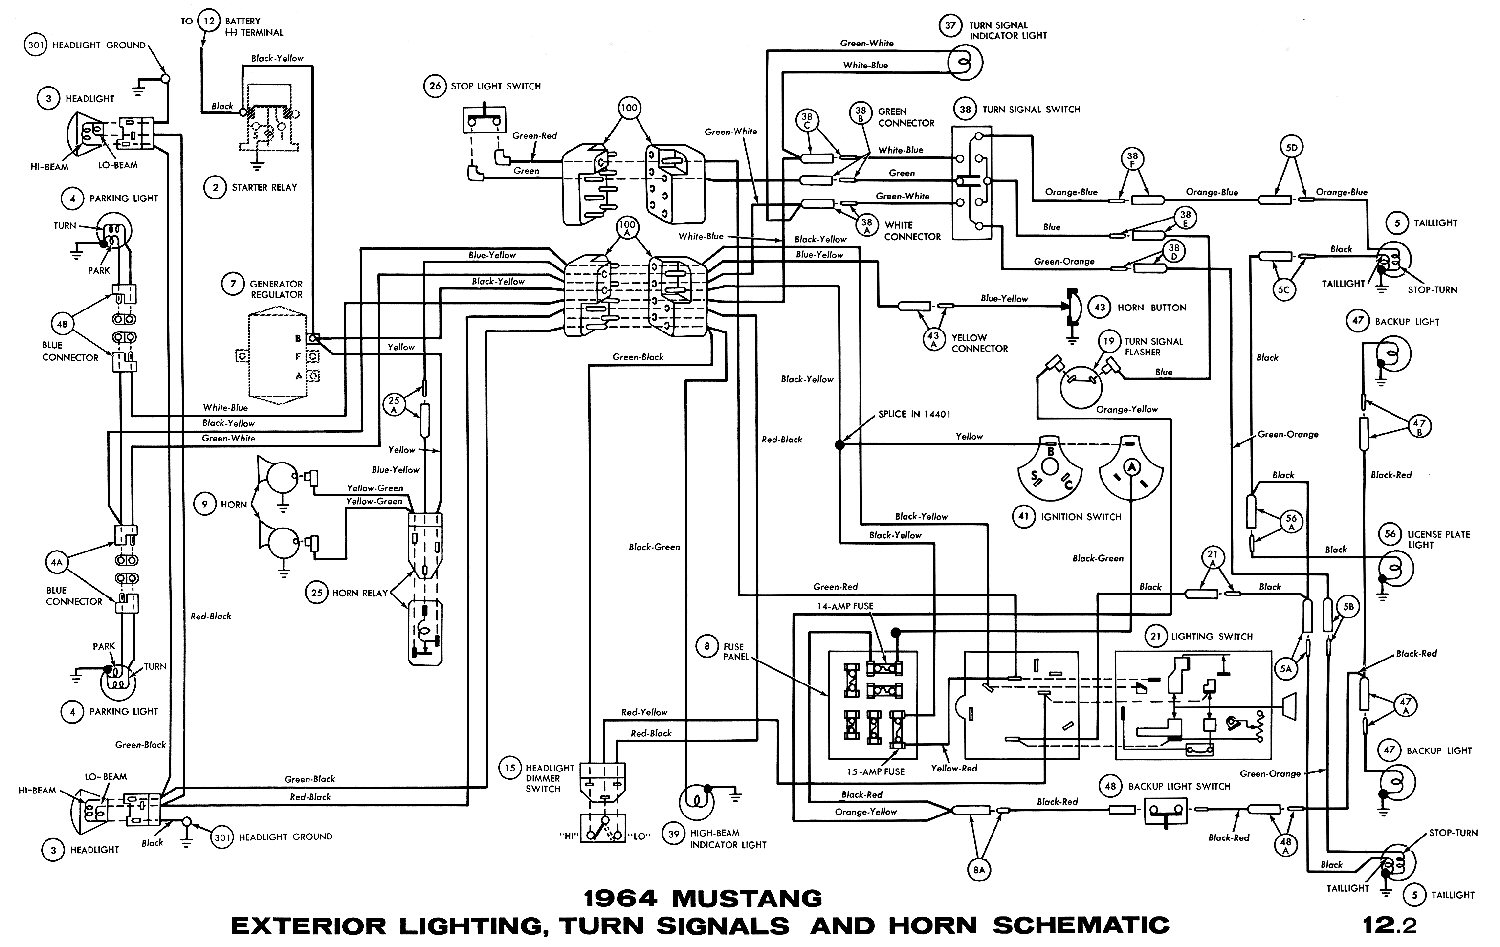 1964i 1965 ford mustang wiring diagram 1999 mustang gt wiring diagram 1965 ford mustang wiring diagrams at sewacar.co